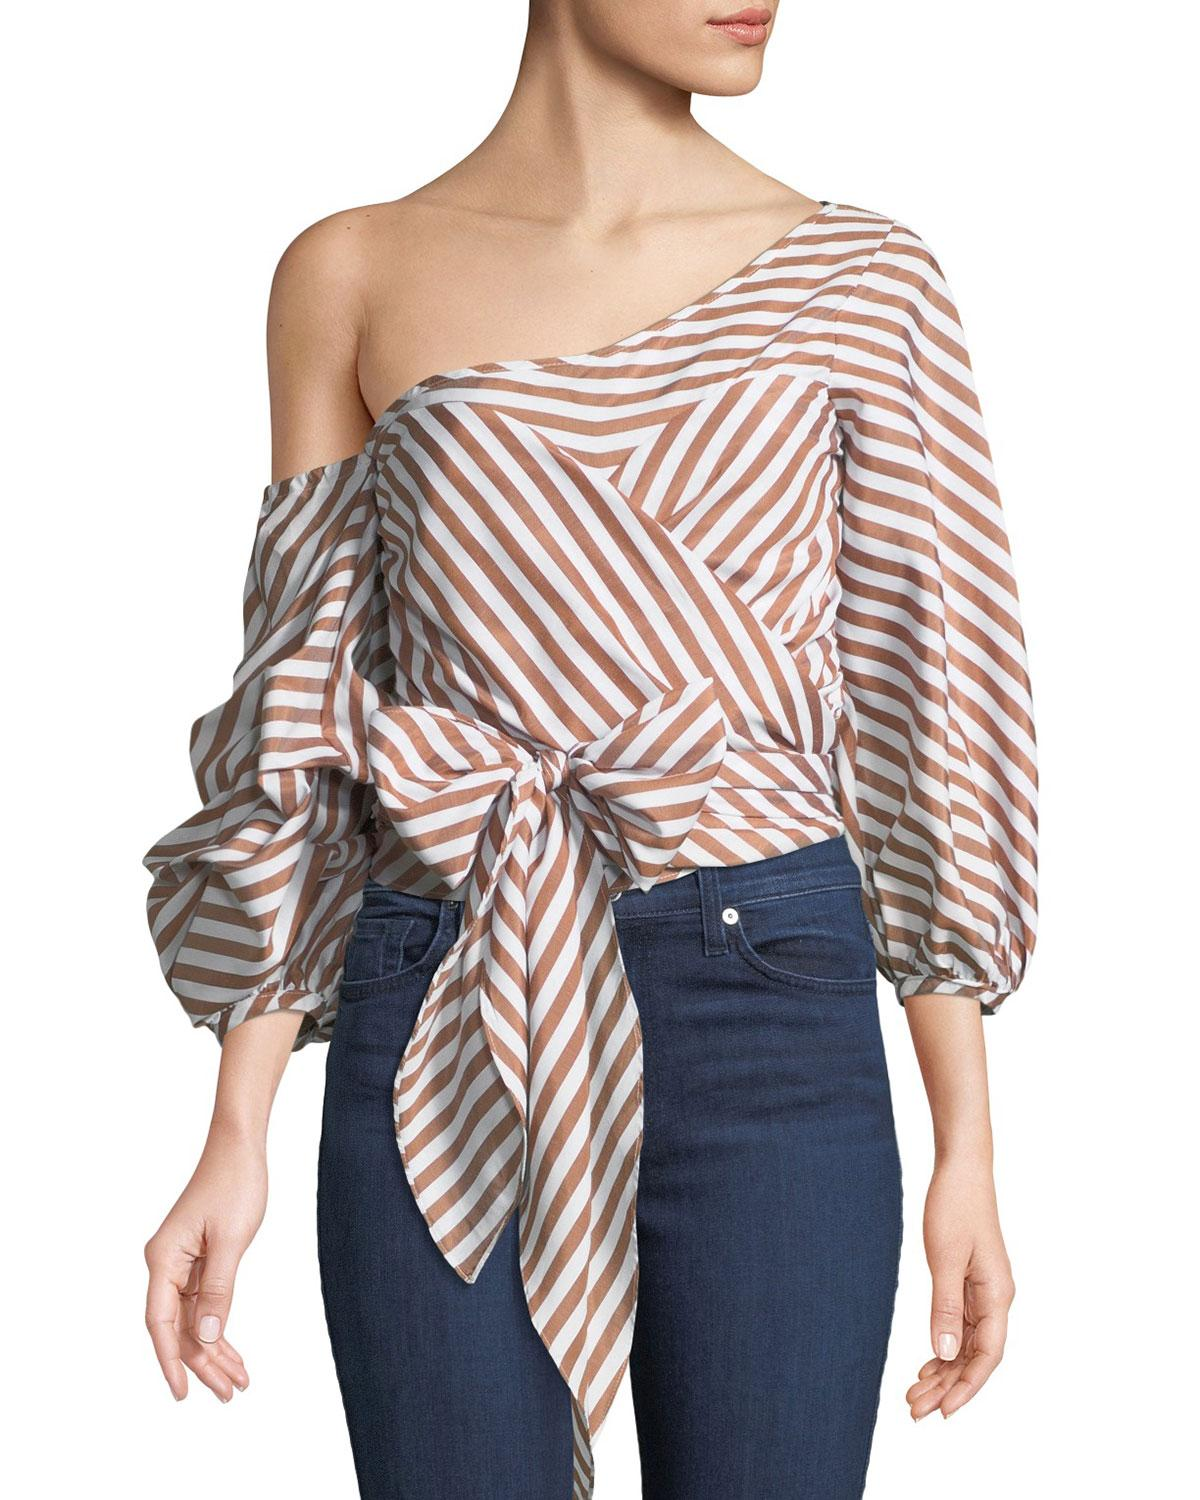 135e6fc758 Stylekeepers Wrap Me In Love Striped Blouse In Brown/White | ModeSens